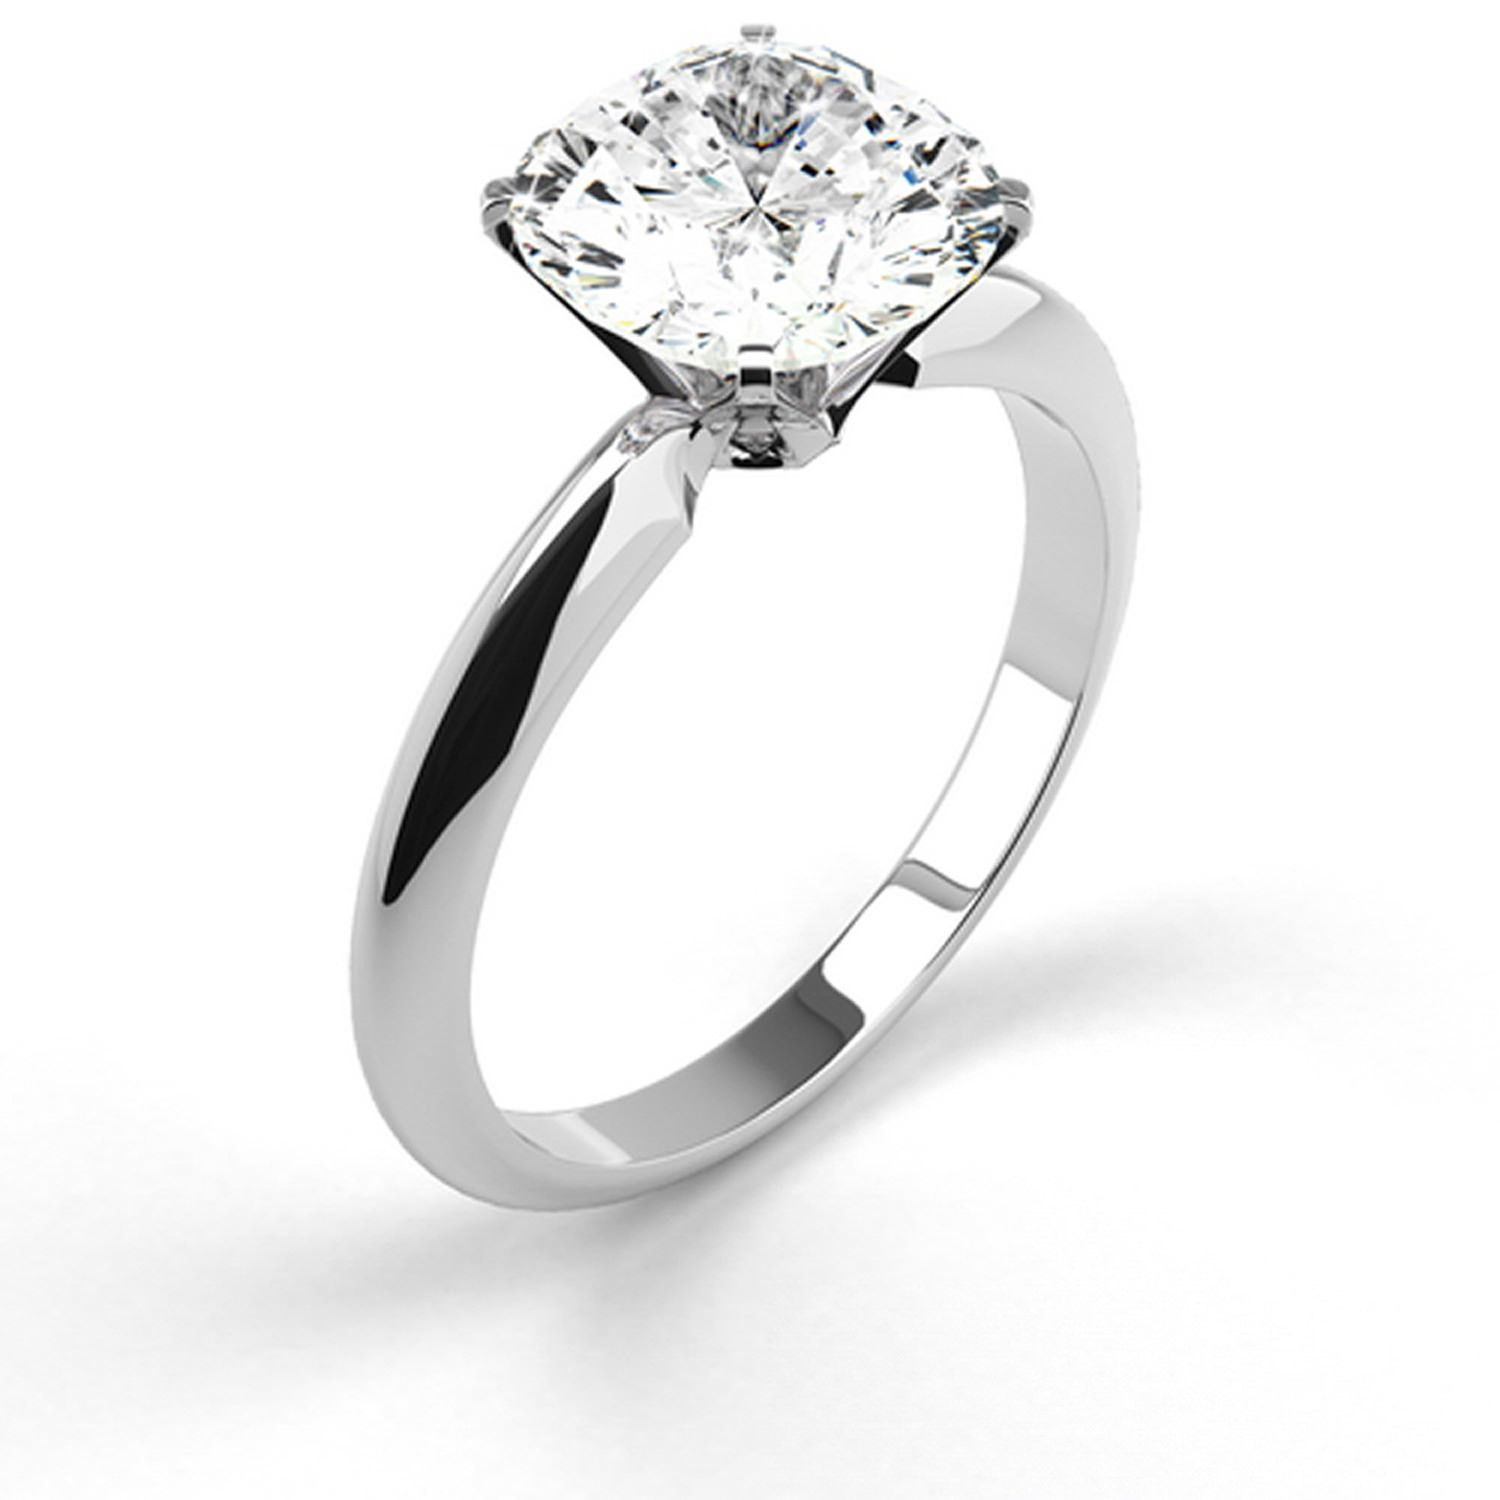 engagement diamond settings jewellery caymancode ring setting wise jewelry rings unique